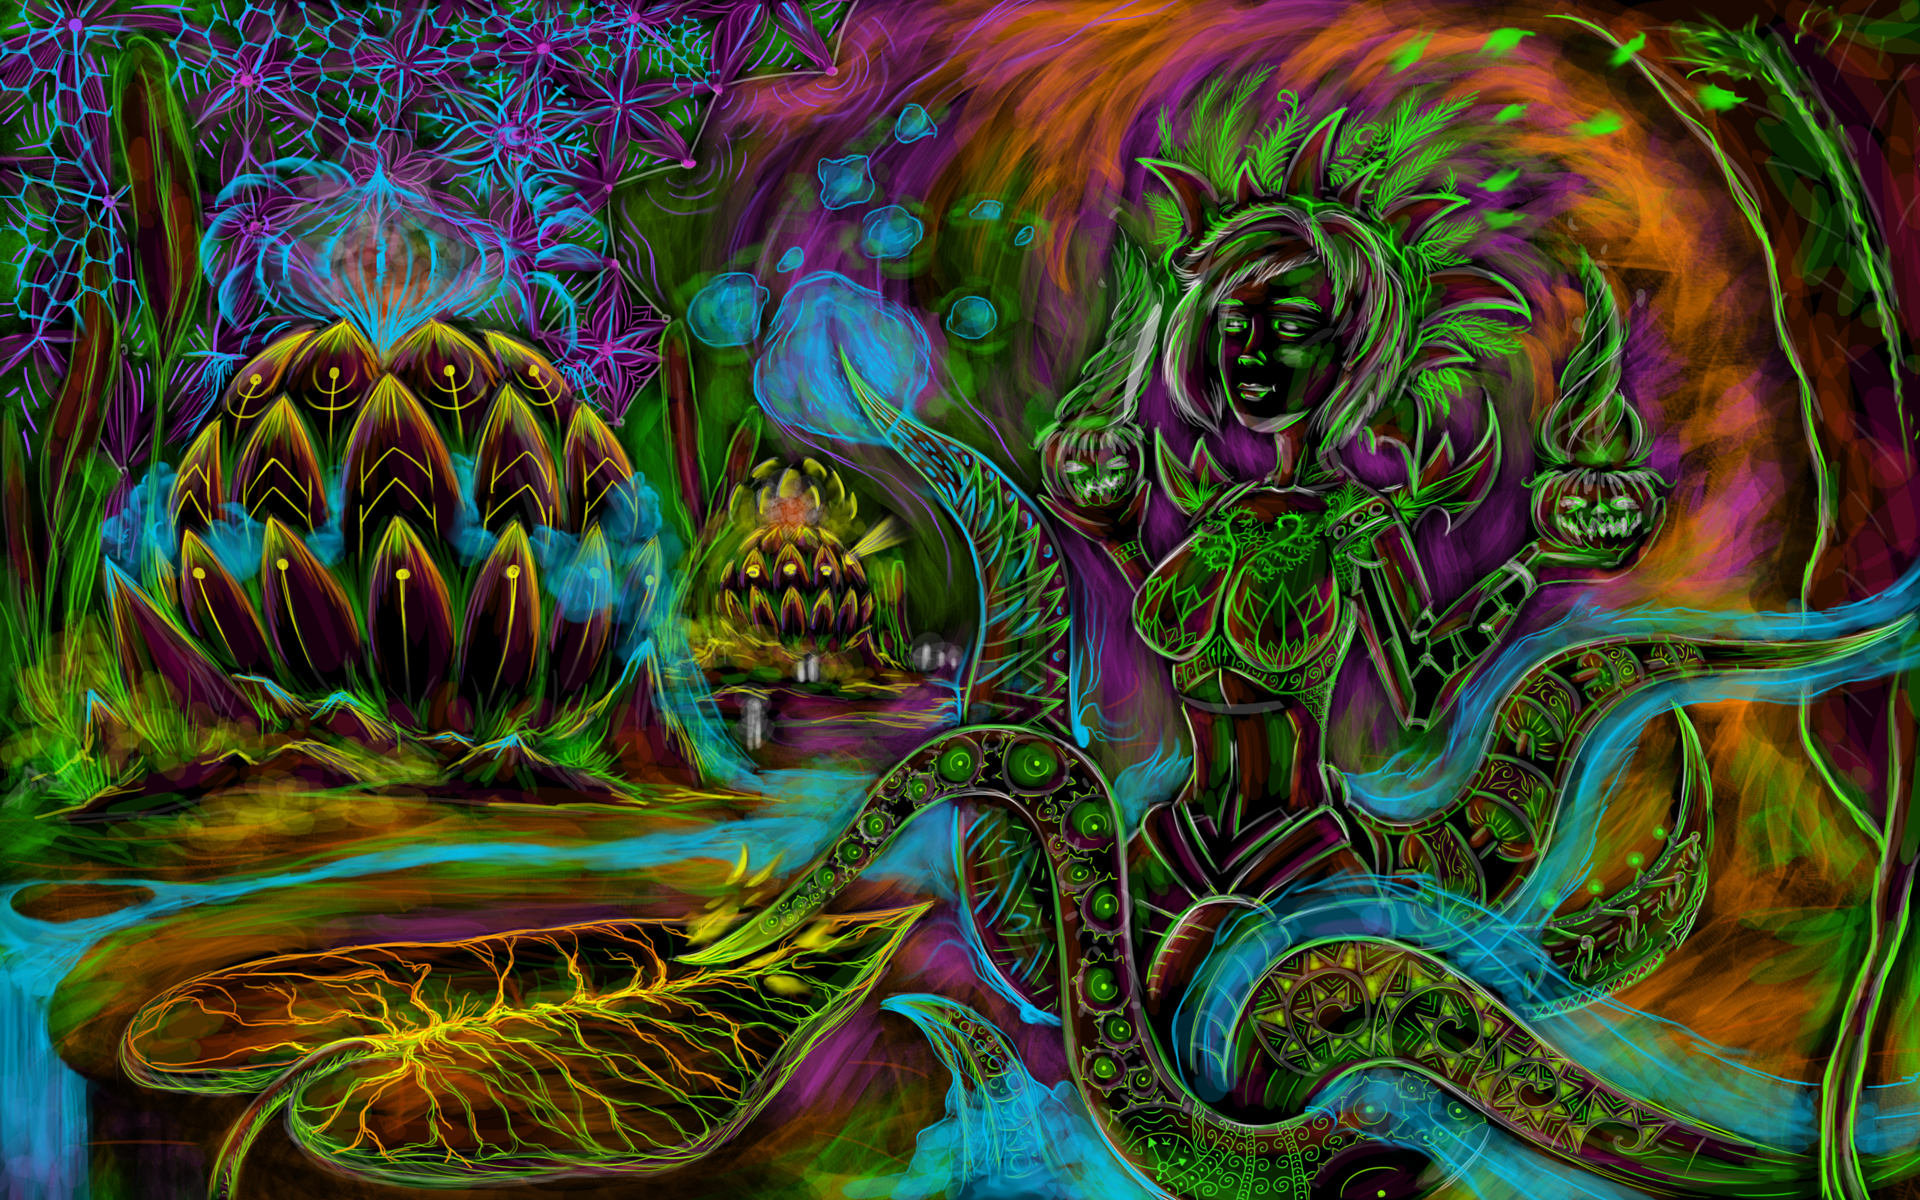 Cyber octopus free psychedelic art wallpaper andrei verner - Mushroom 3d wallpaper free download ...